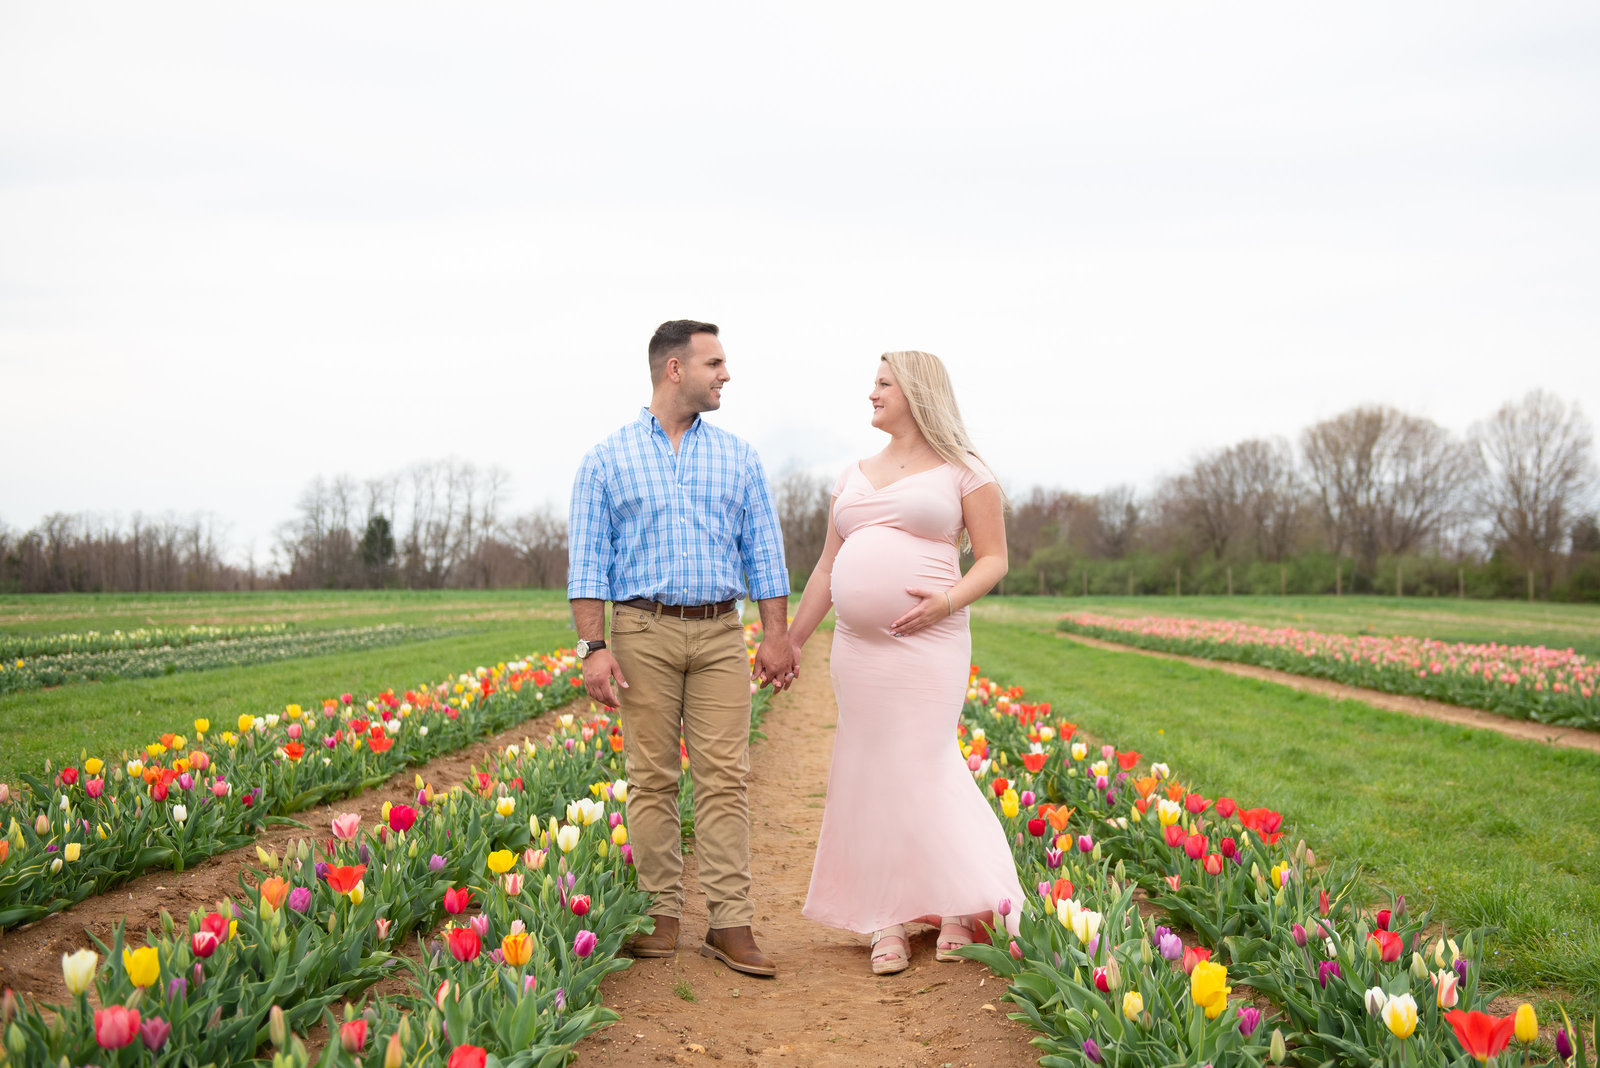 rachel-sean-spring-maternity-session-holland-ridhe-farms-imagery-by-marianne-2019-29